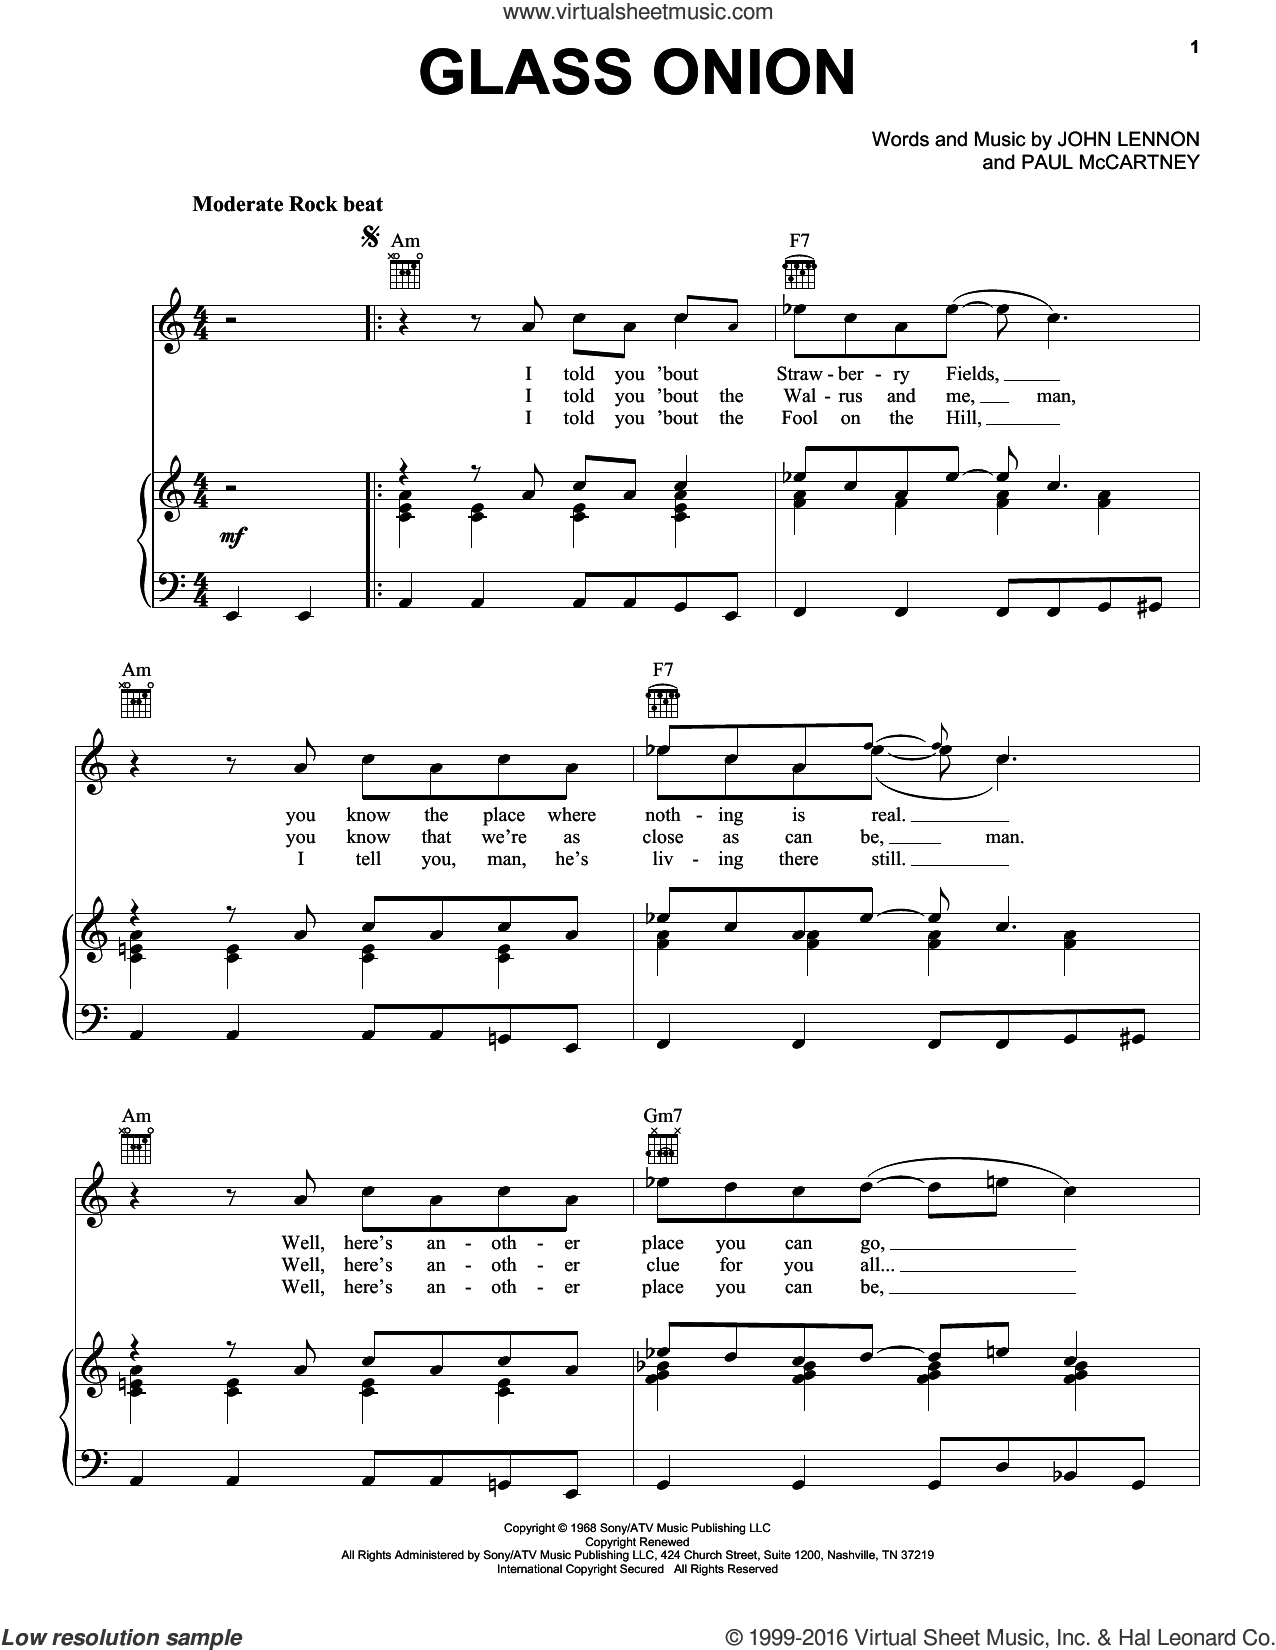 Glass Onion sheet music for voice, piano or guitar by The Beatles, John Lennon and Paul McCartney, intermediate